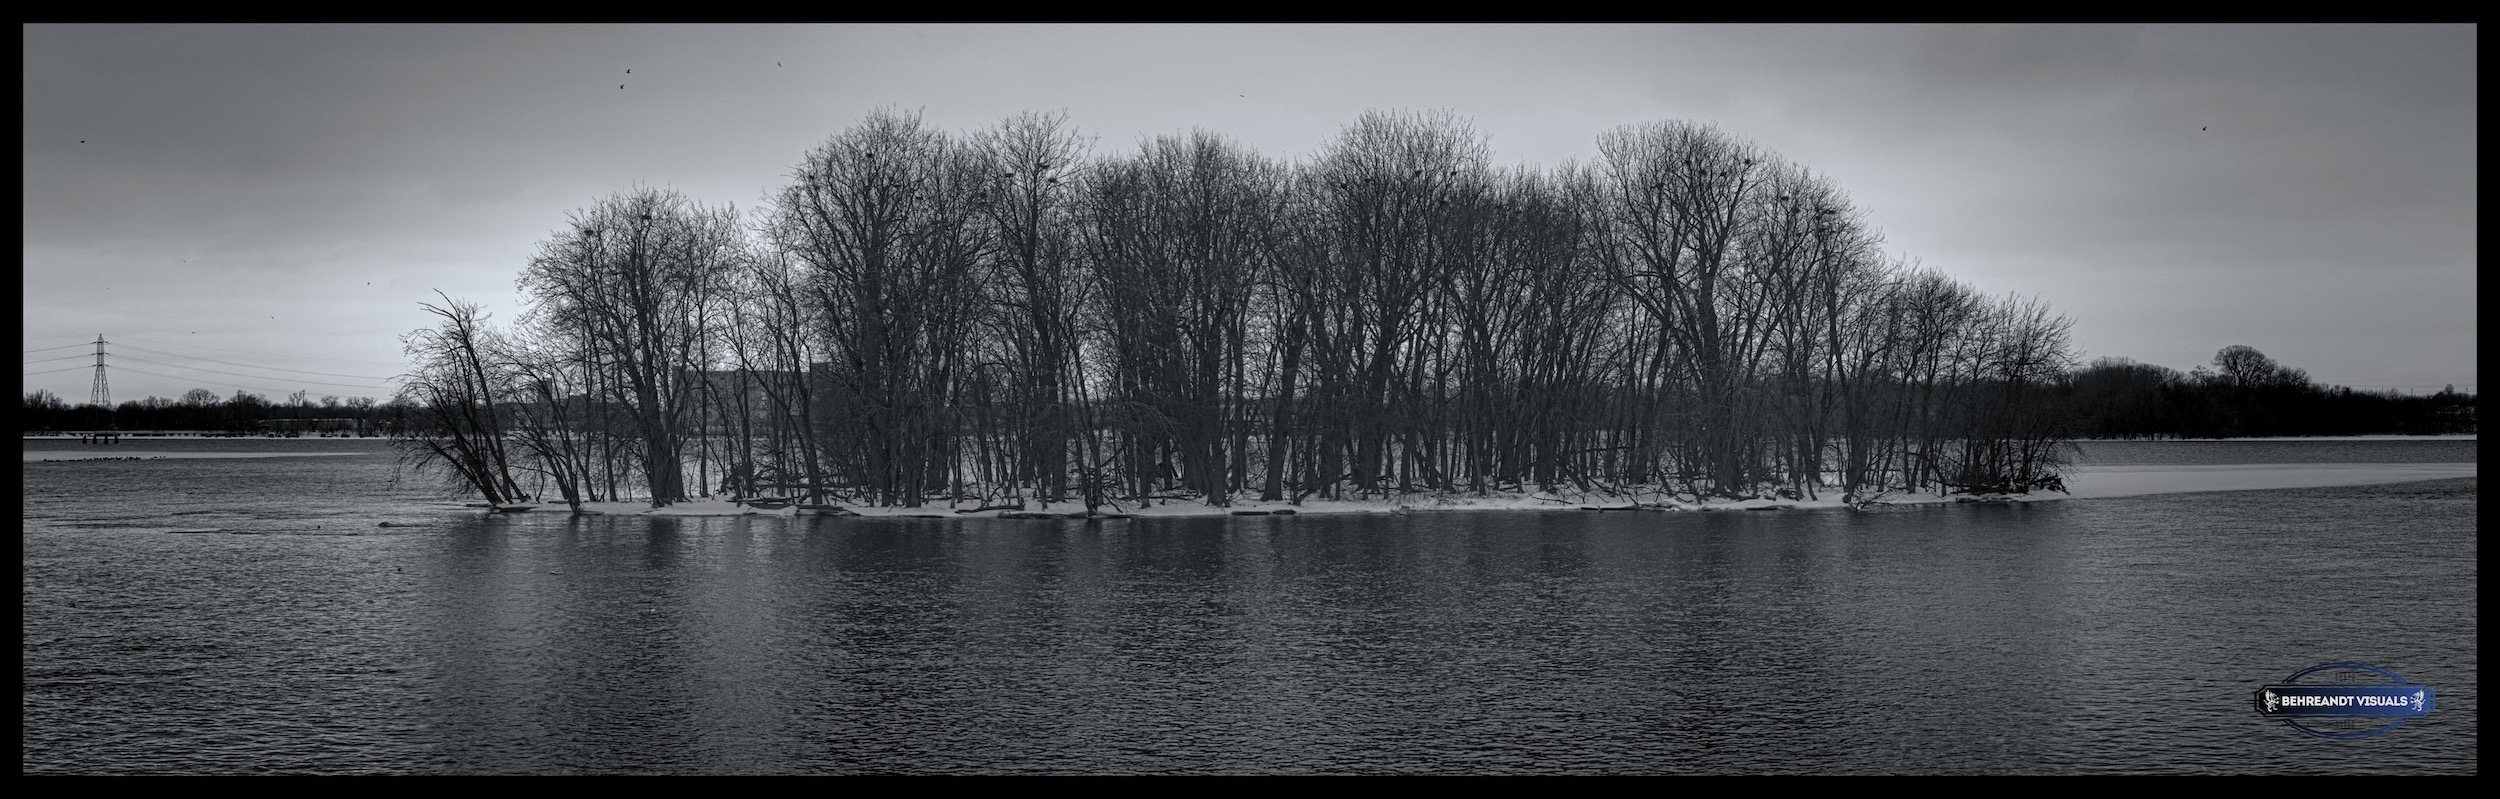 A small island in Little Lake Butte des Morts, Menasha Wisconsin.